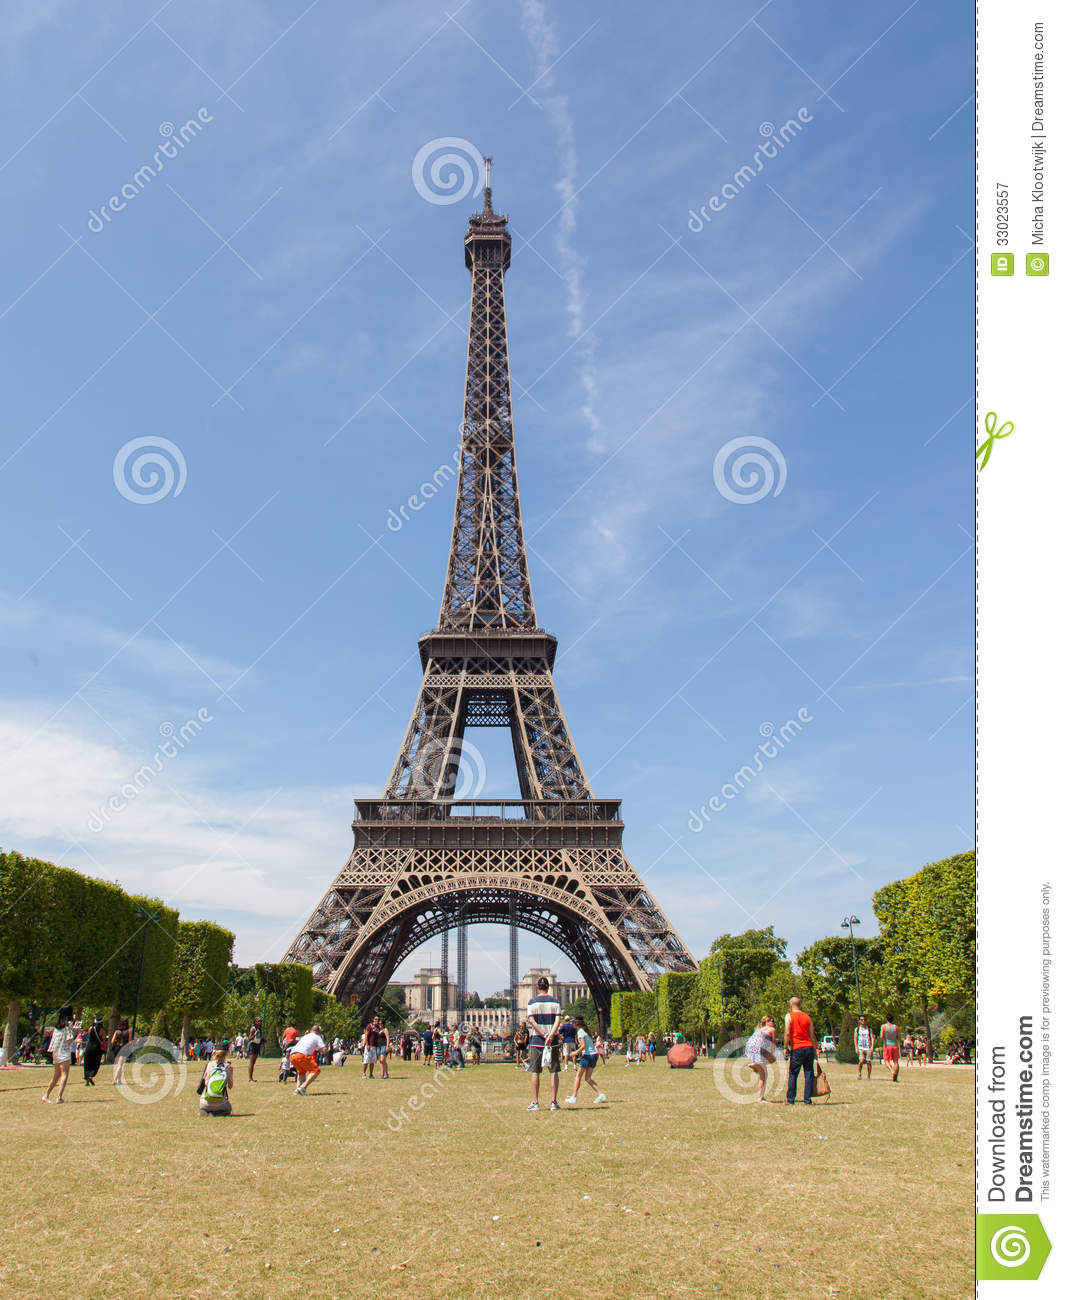 Paris Main Attractions In One Day: JULY 27: Tourists At The Eiffel Tower On July 27